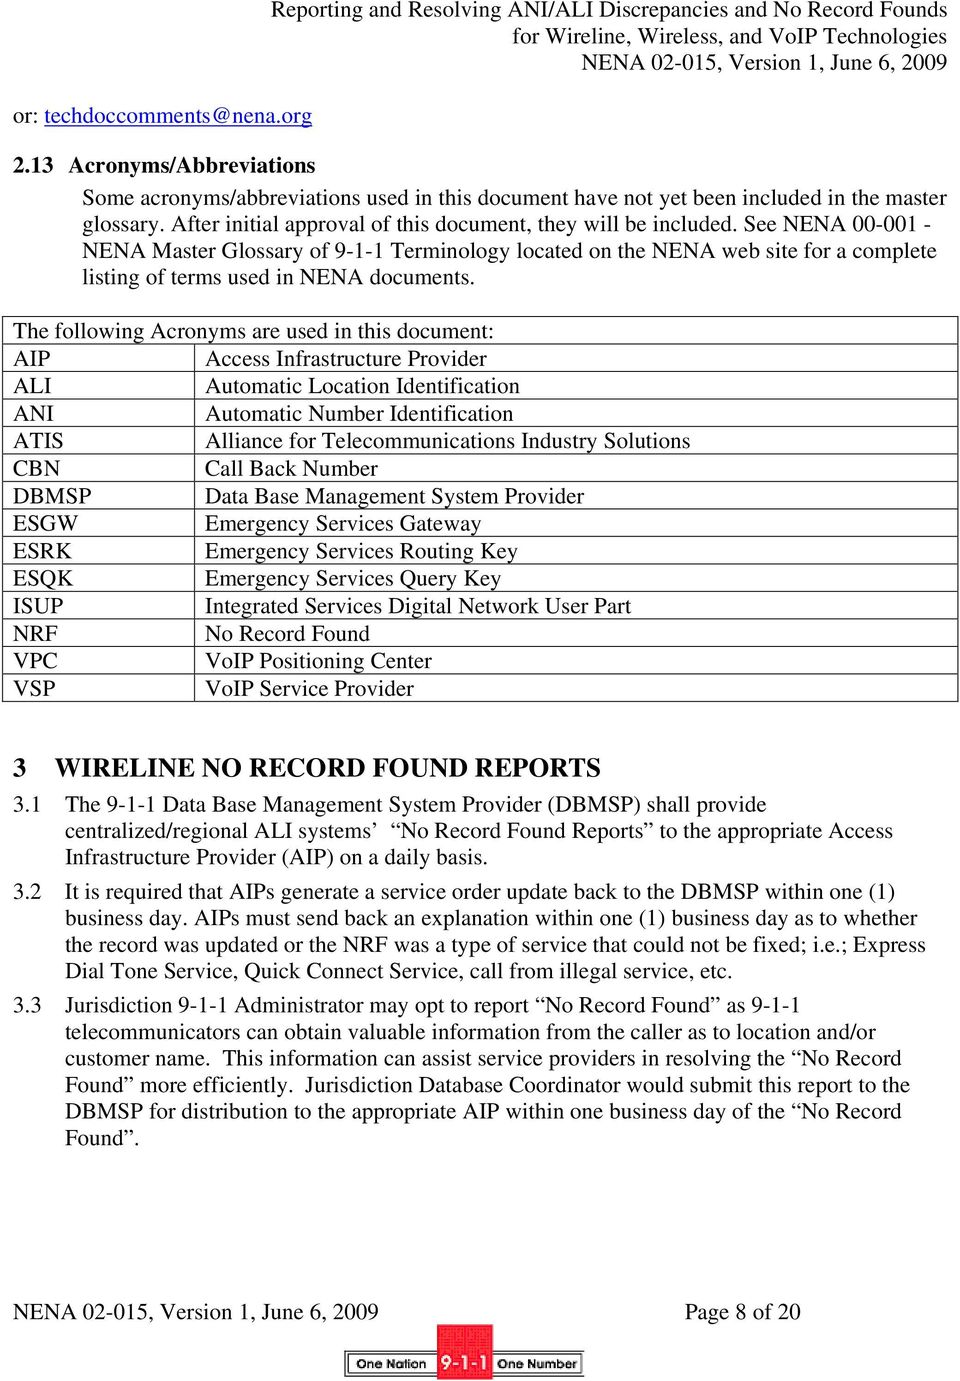 See NENA 00-001 - NENA Master Glossary of 9-1-1 Terminology located on the NENA web site for a complete listing of terms used in NENA documents.